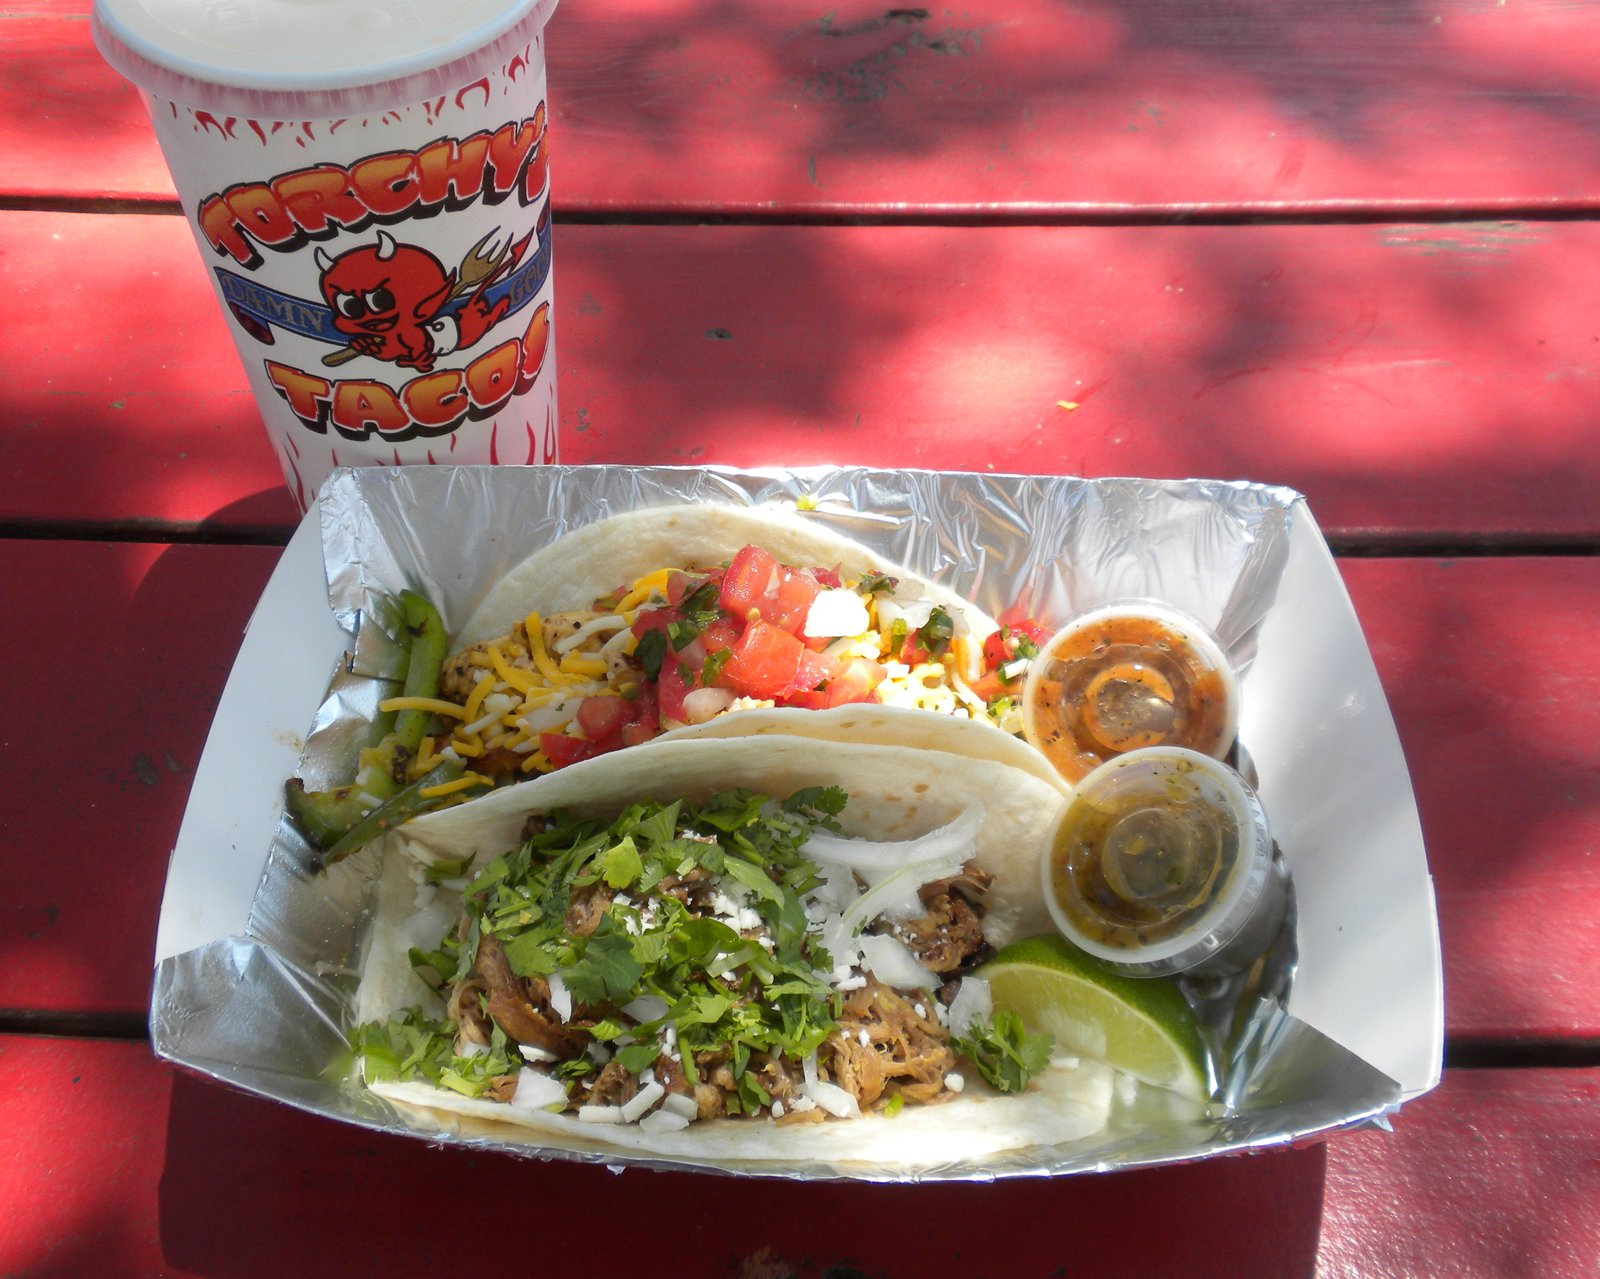 Since it was the most recommended must-do from Dwell Twitter followers (from the likes of @sarahrich, @ladygodiva1234, and @bayne16thstate, among others), Torchy's was my truck of choice. The gal at the counter recommended a green chili pork taco and a chicken fajita taco (though I wished I'd had had room for a fried avocado taco, too!).  Three Days in Austin, Texas by Miyoko Ohtake